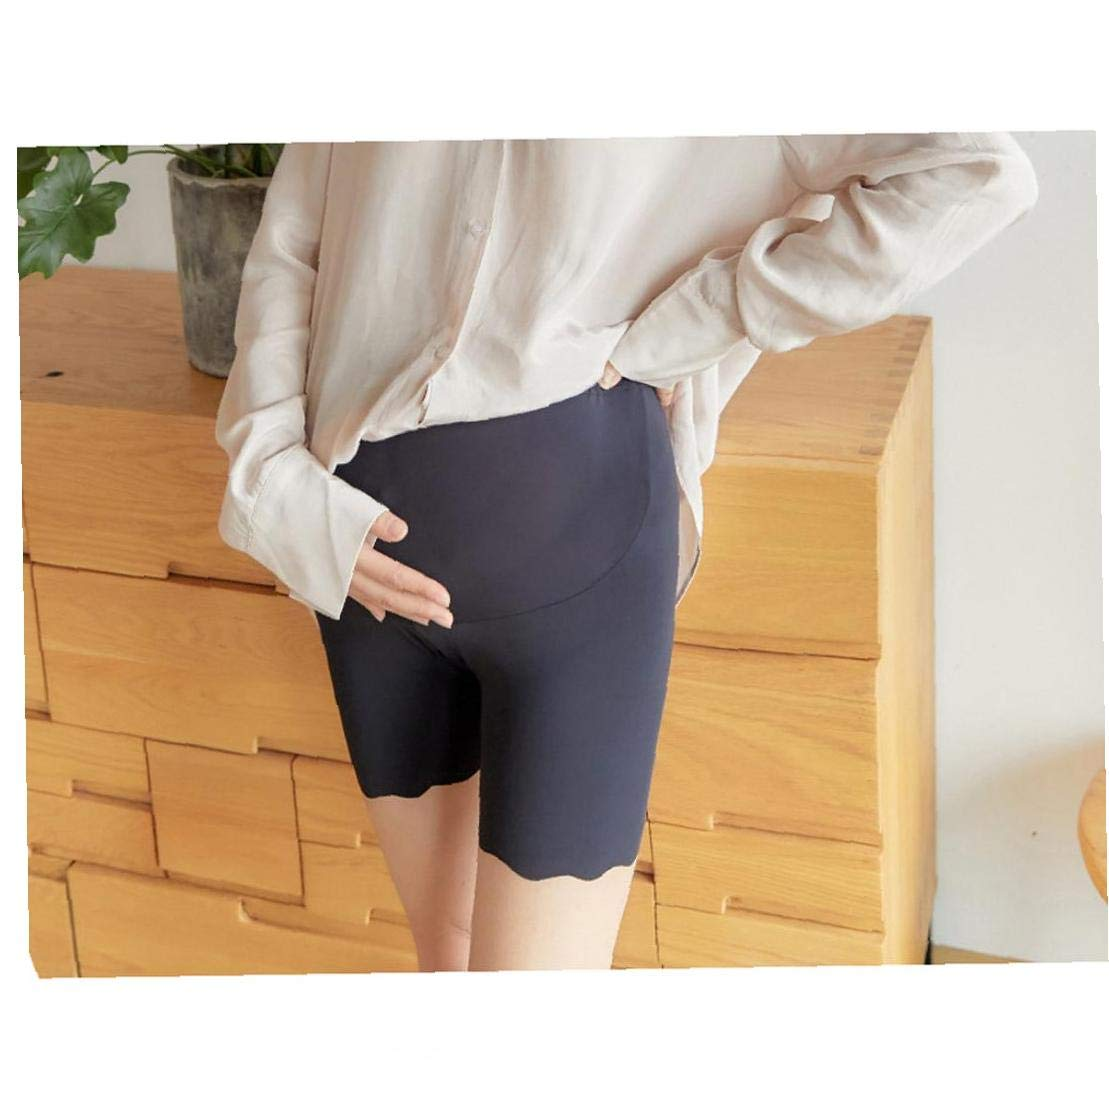 Pregnant Womens Plus Size Modal Cotton Short Leggings Pants Lightweight Breathable Mid Thigh Stretchy Shorts